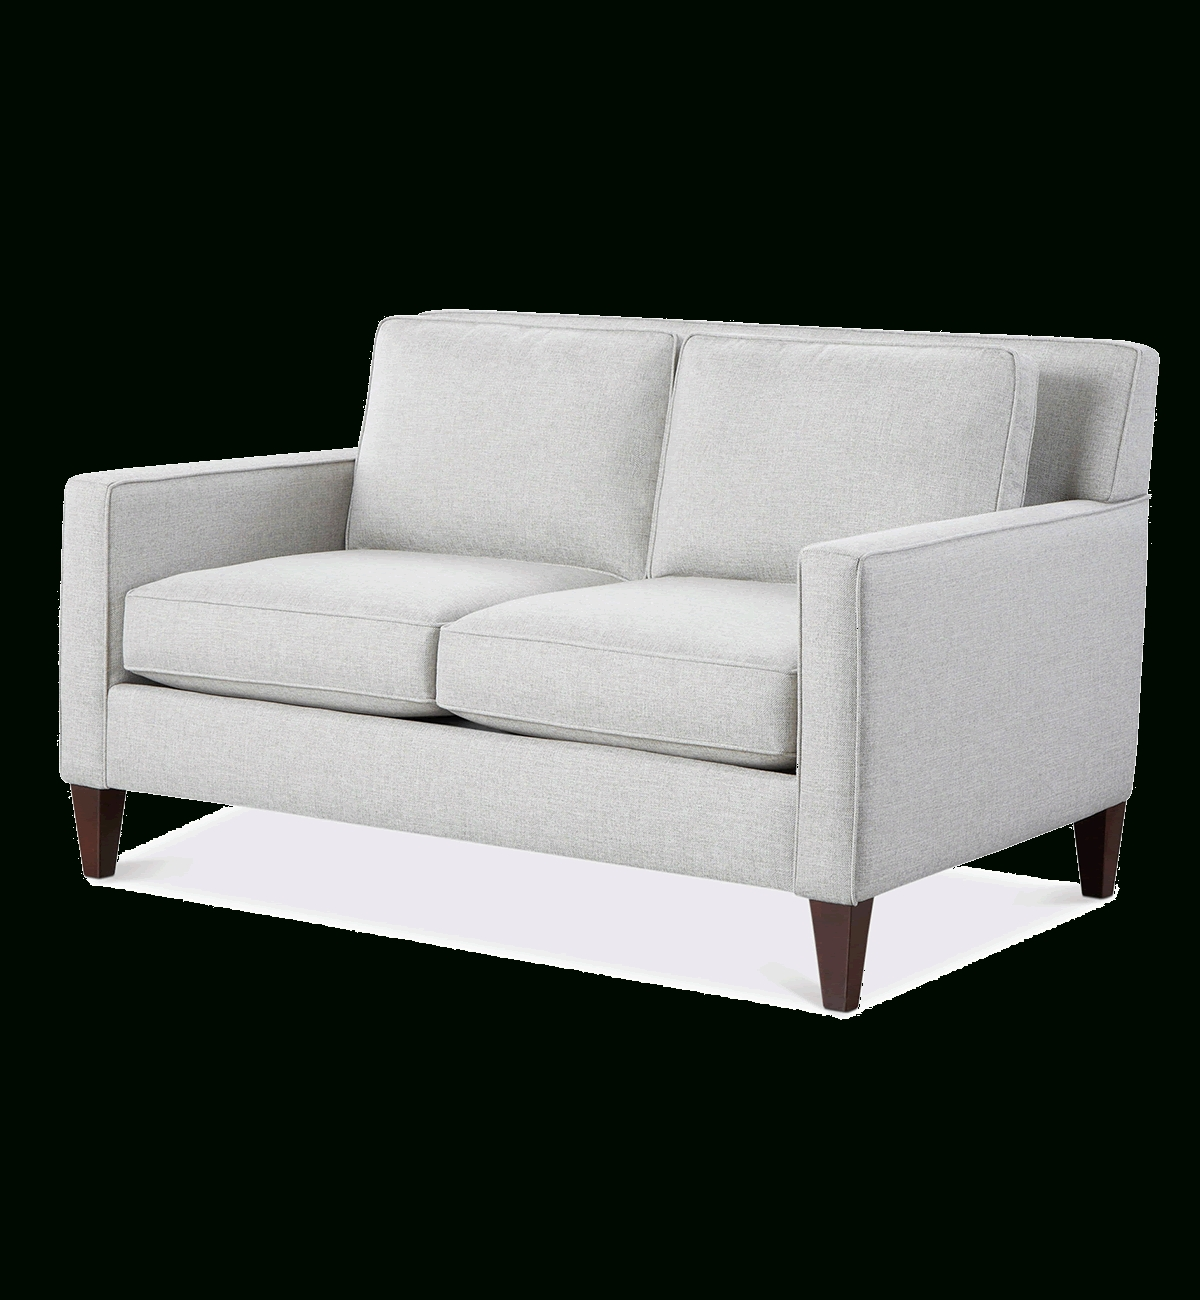 White Sofa Chairs For Best And Newest White Couches And Sofas – Macy's (View 17 of 20)